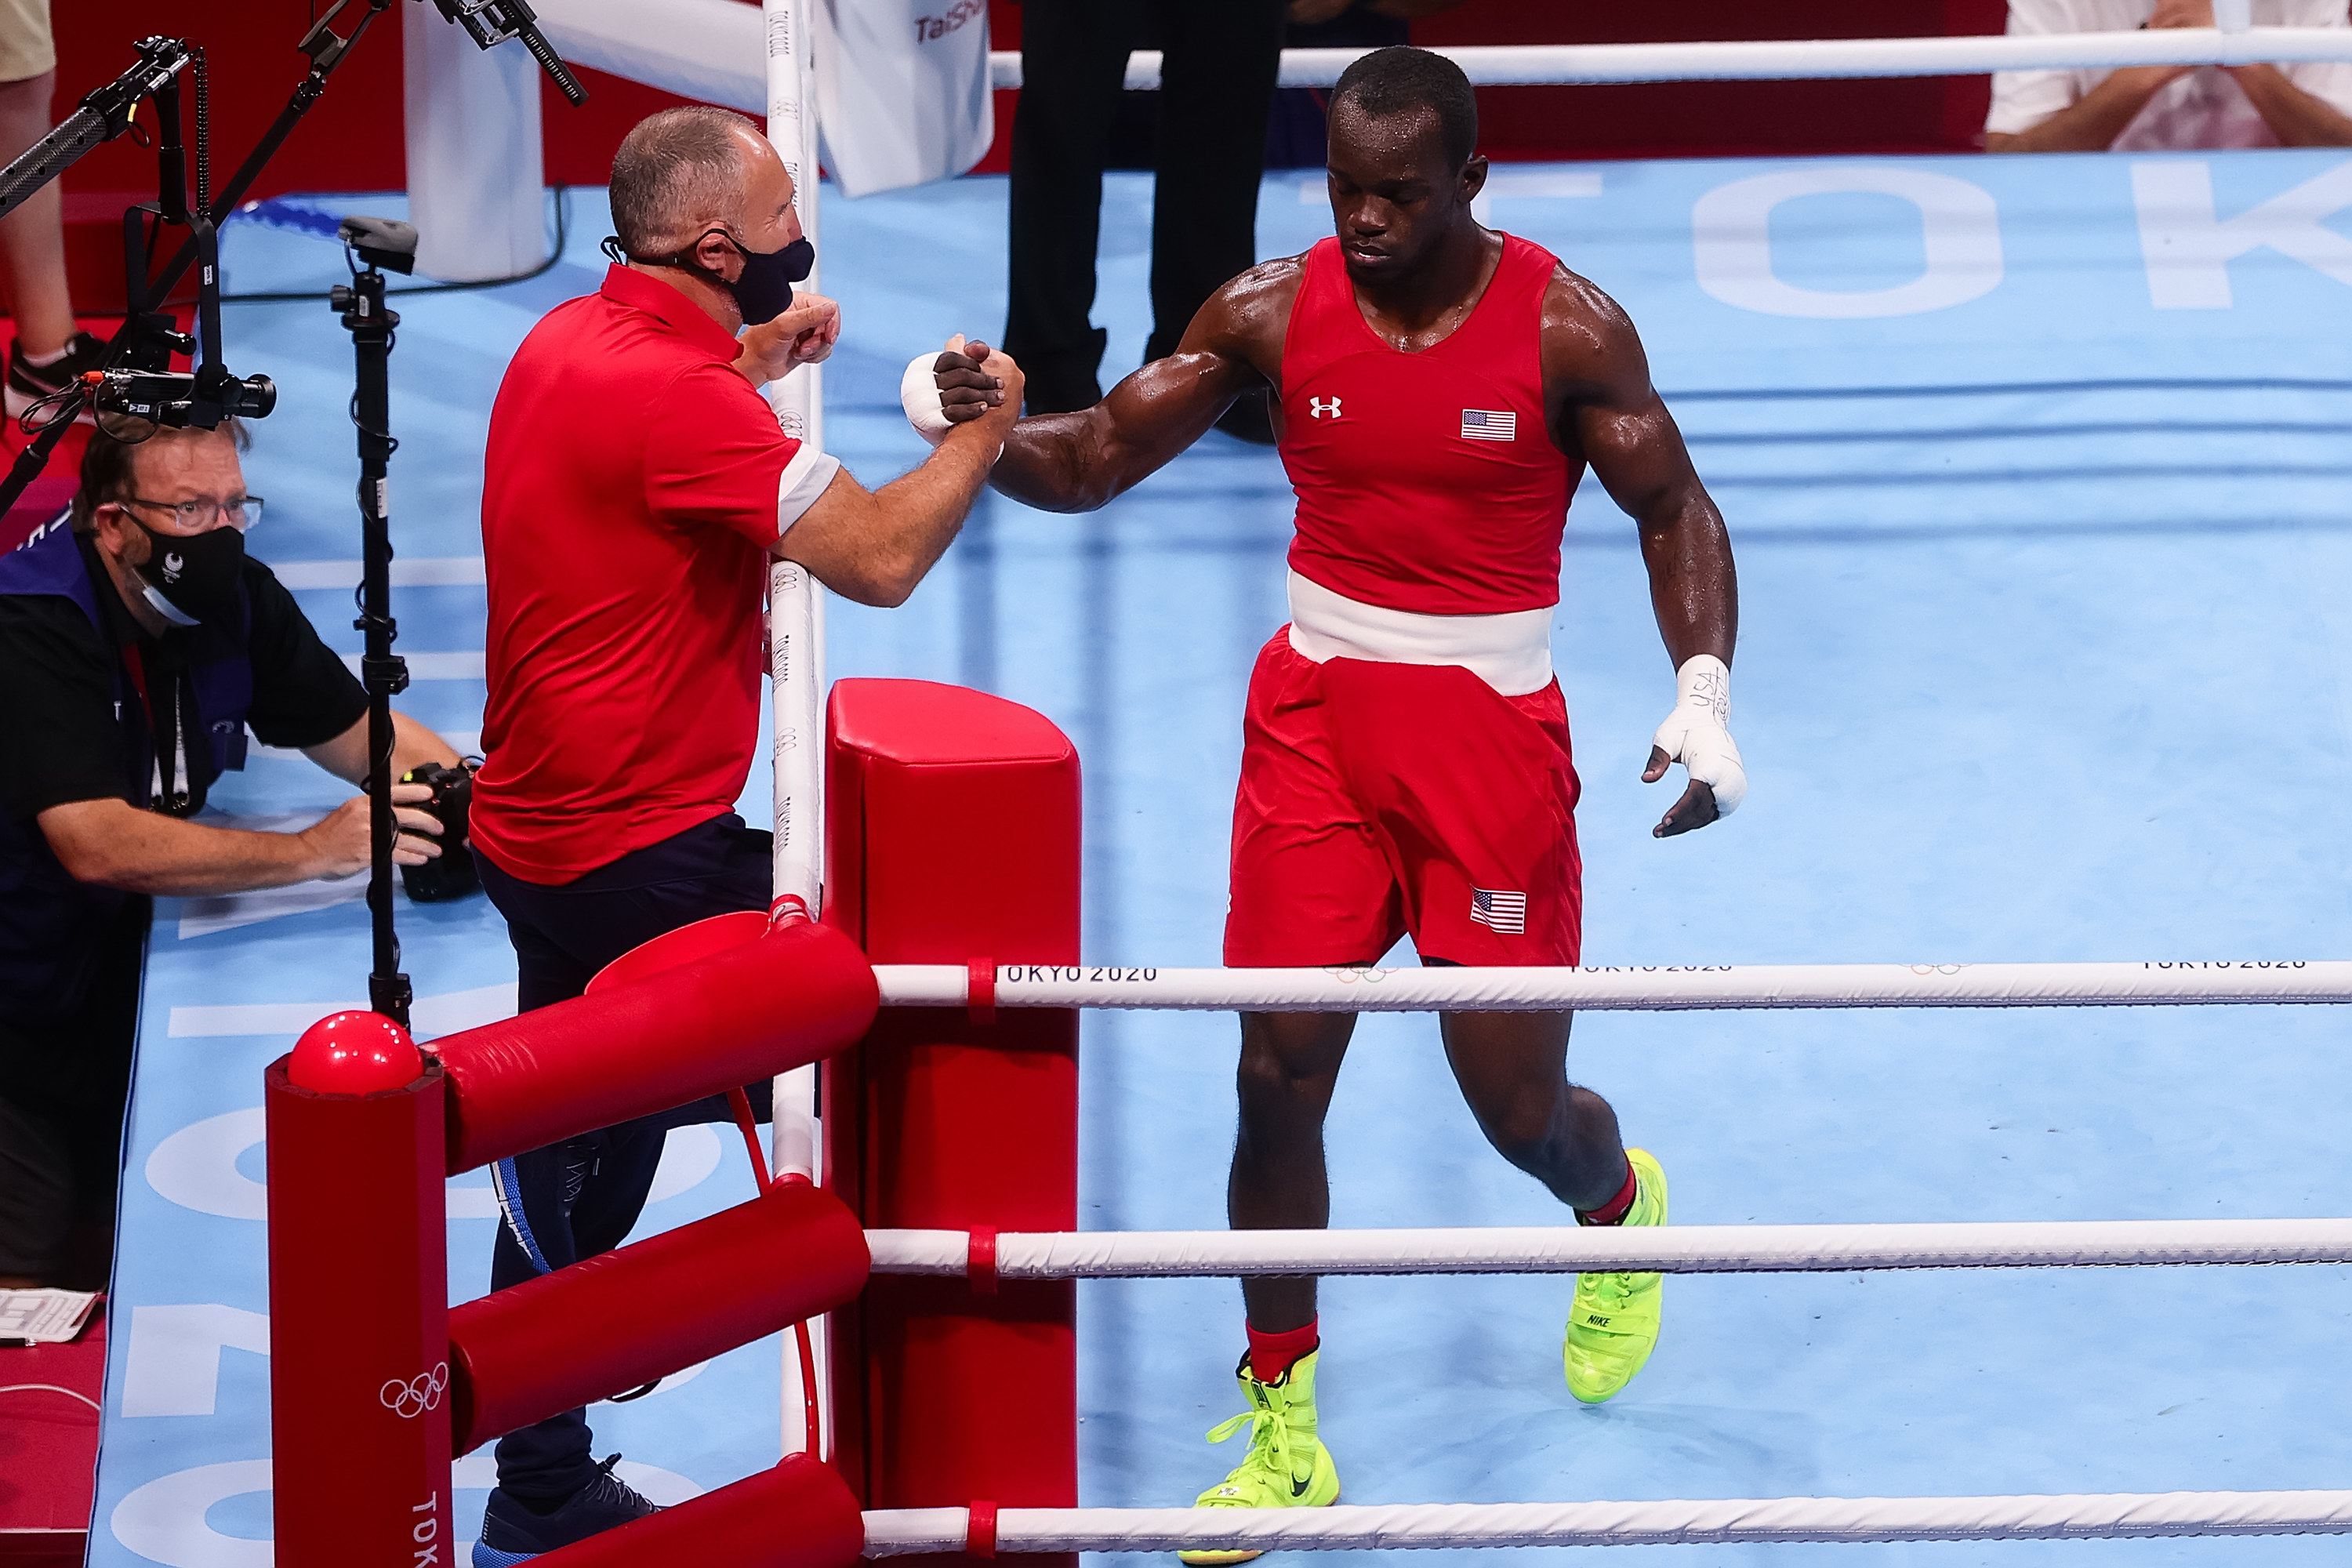 Isley wins the fight during the Men's Middleweight Boxing Preliminary match